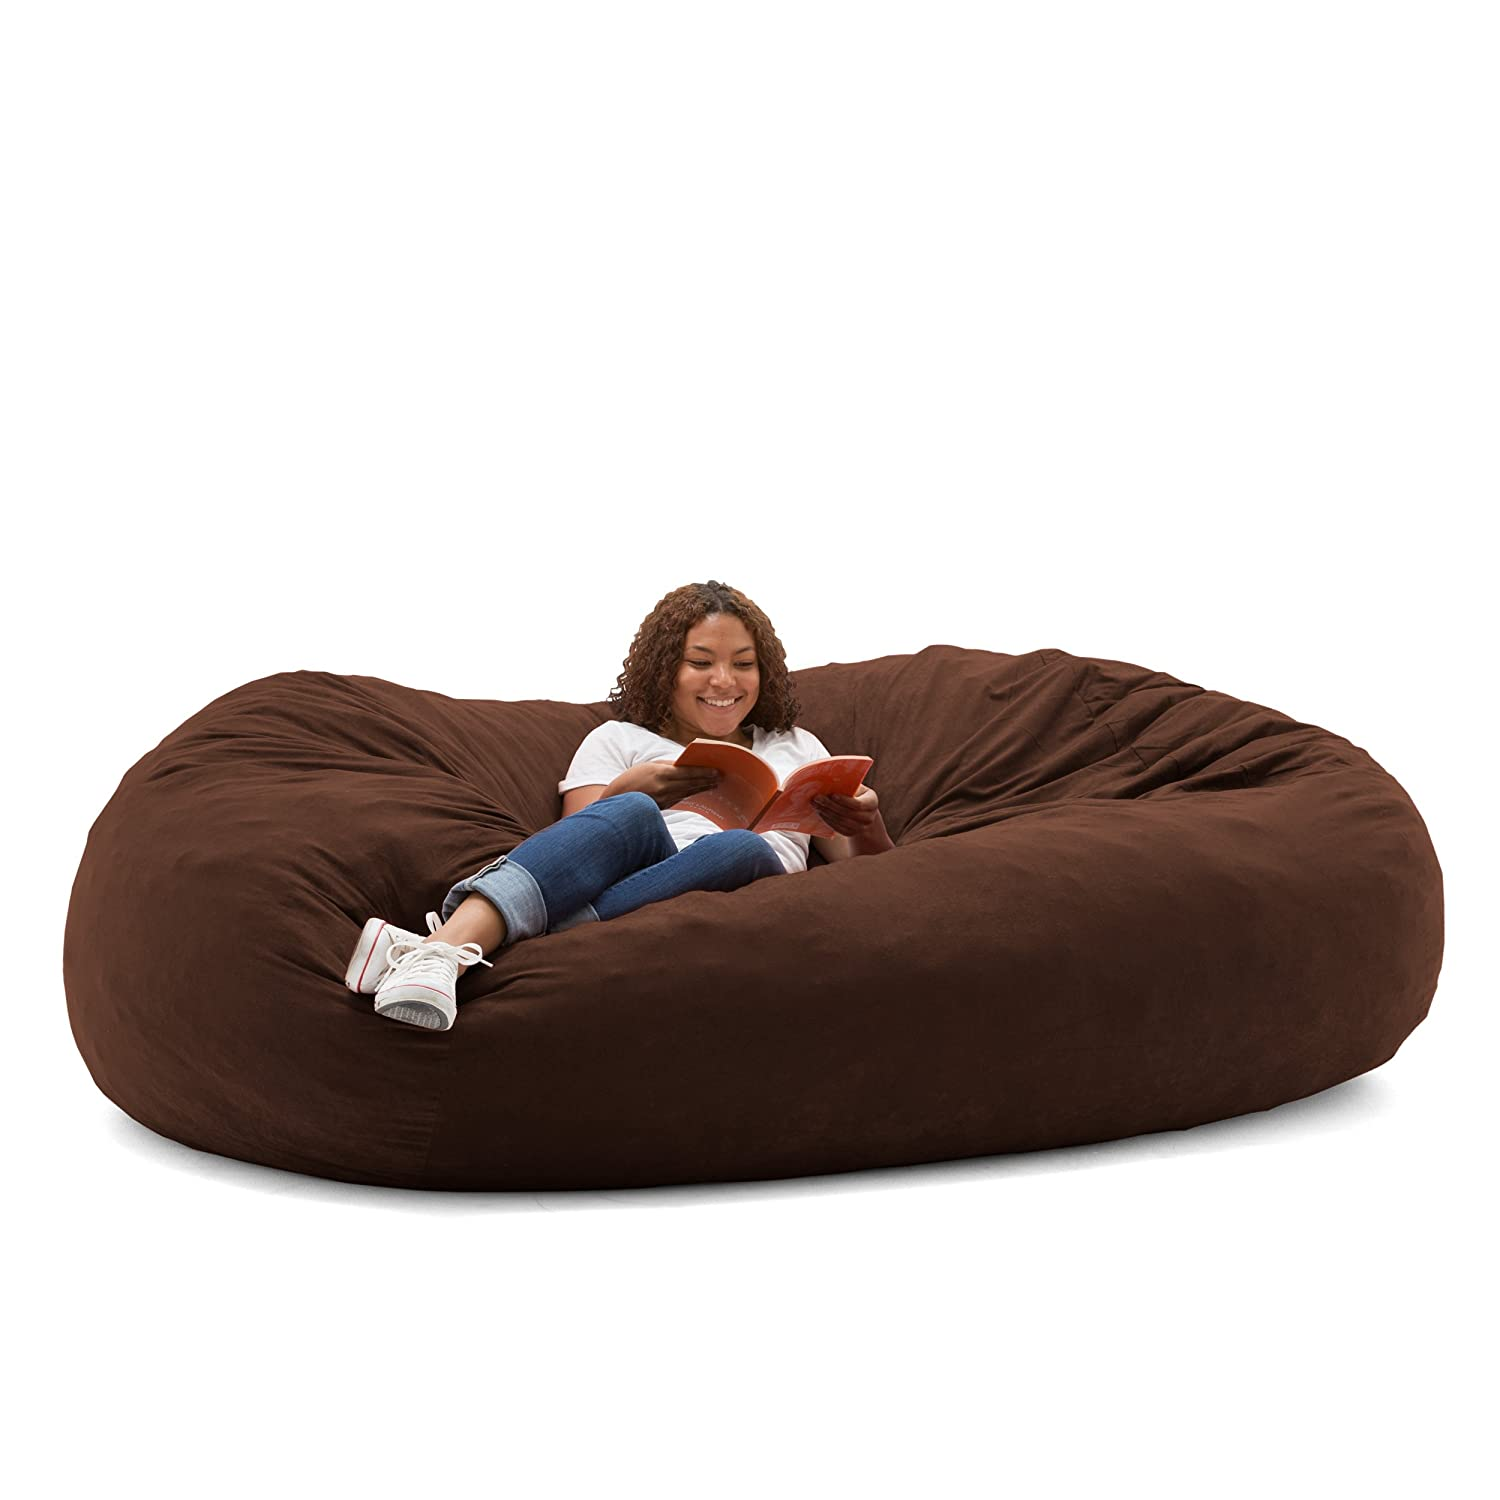 Amazon.com: Big Joe XXL Fuf Foam Filled Bean Bag Chair, Comfort Suede,  Espresso: Kitchen U0026 Dining